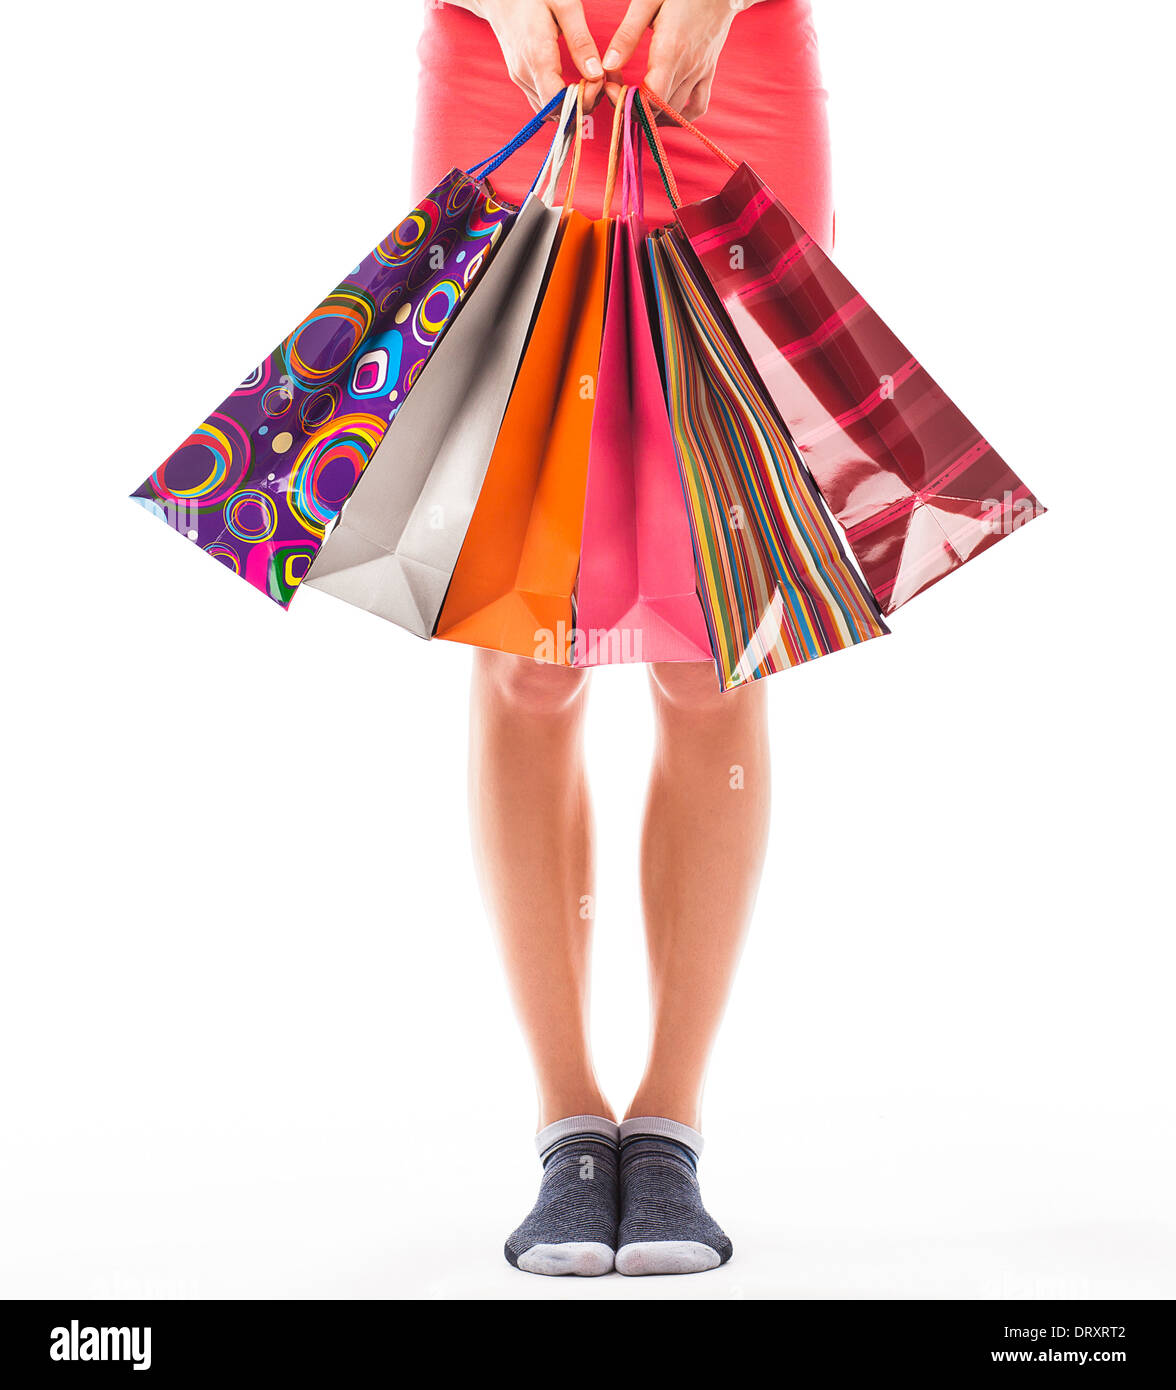 Young woman holding shopping bags, view of her lower body - Stock Image